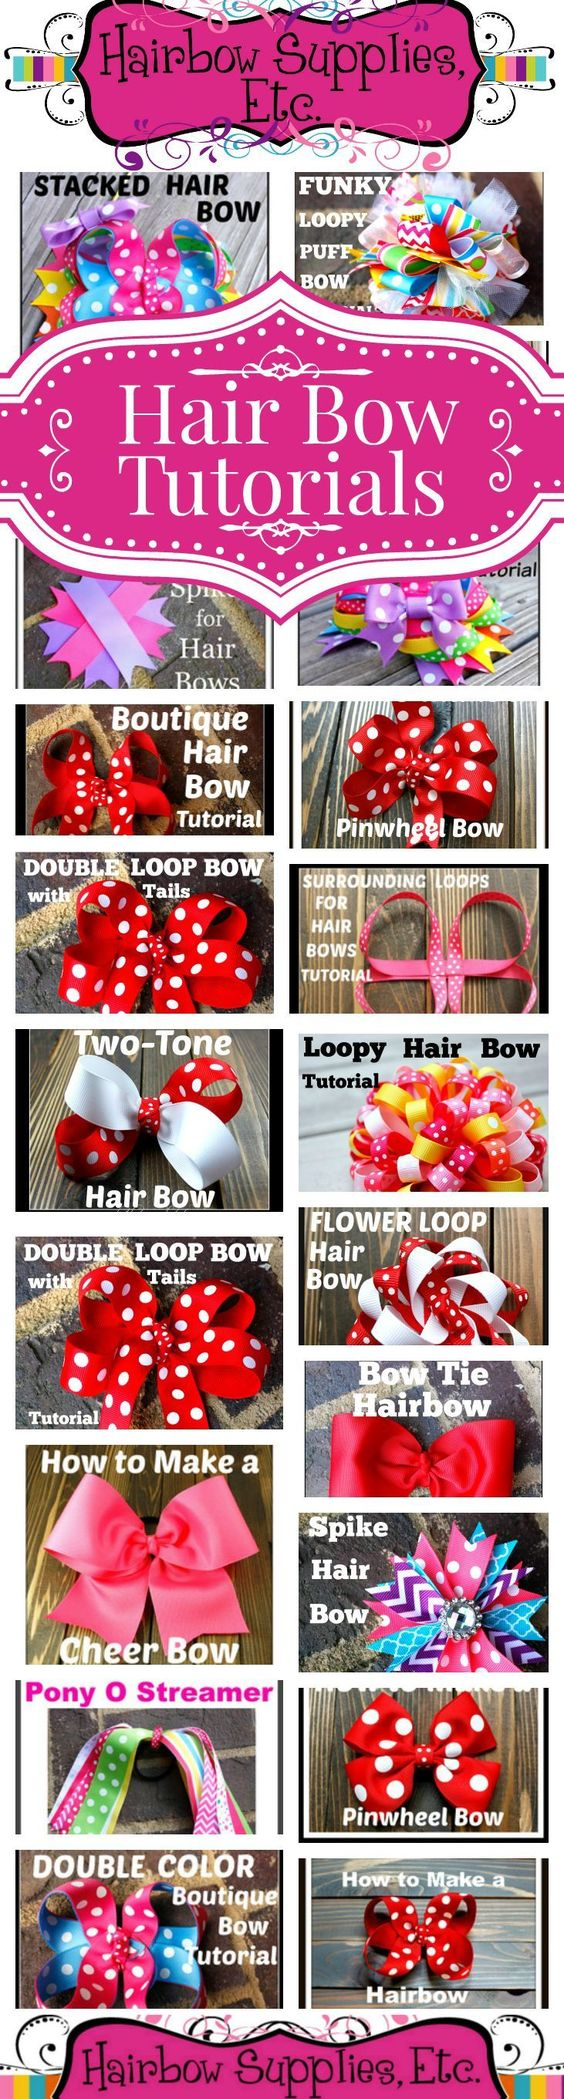 Instructions and videos for how to make all sorts of different hairbows